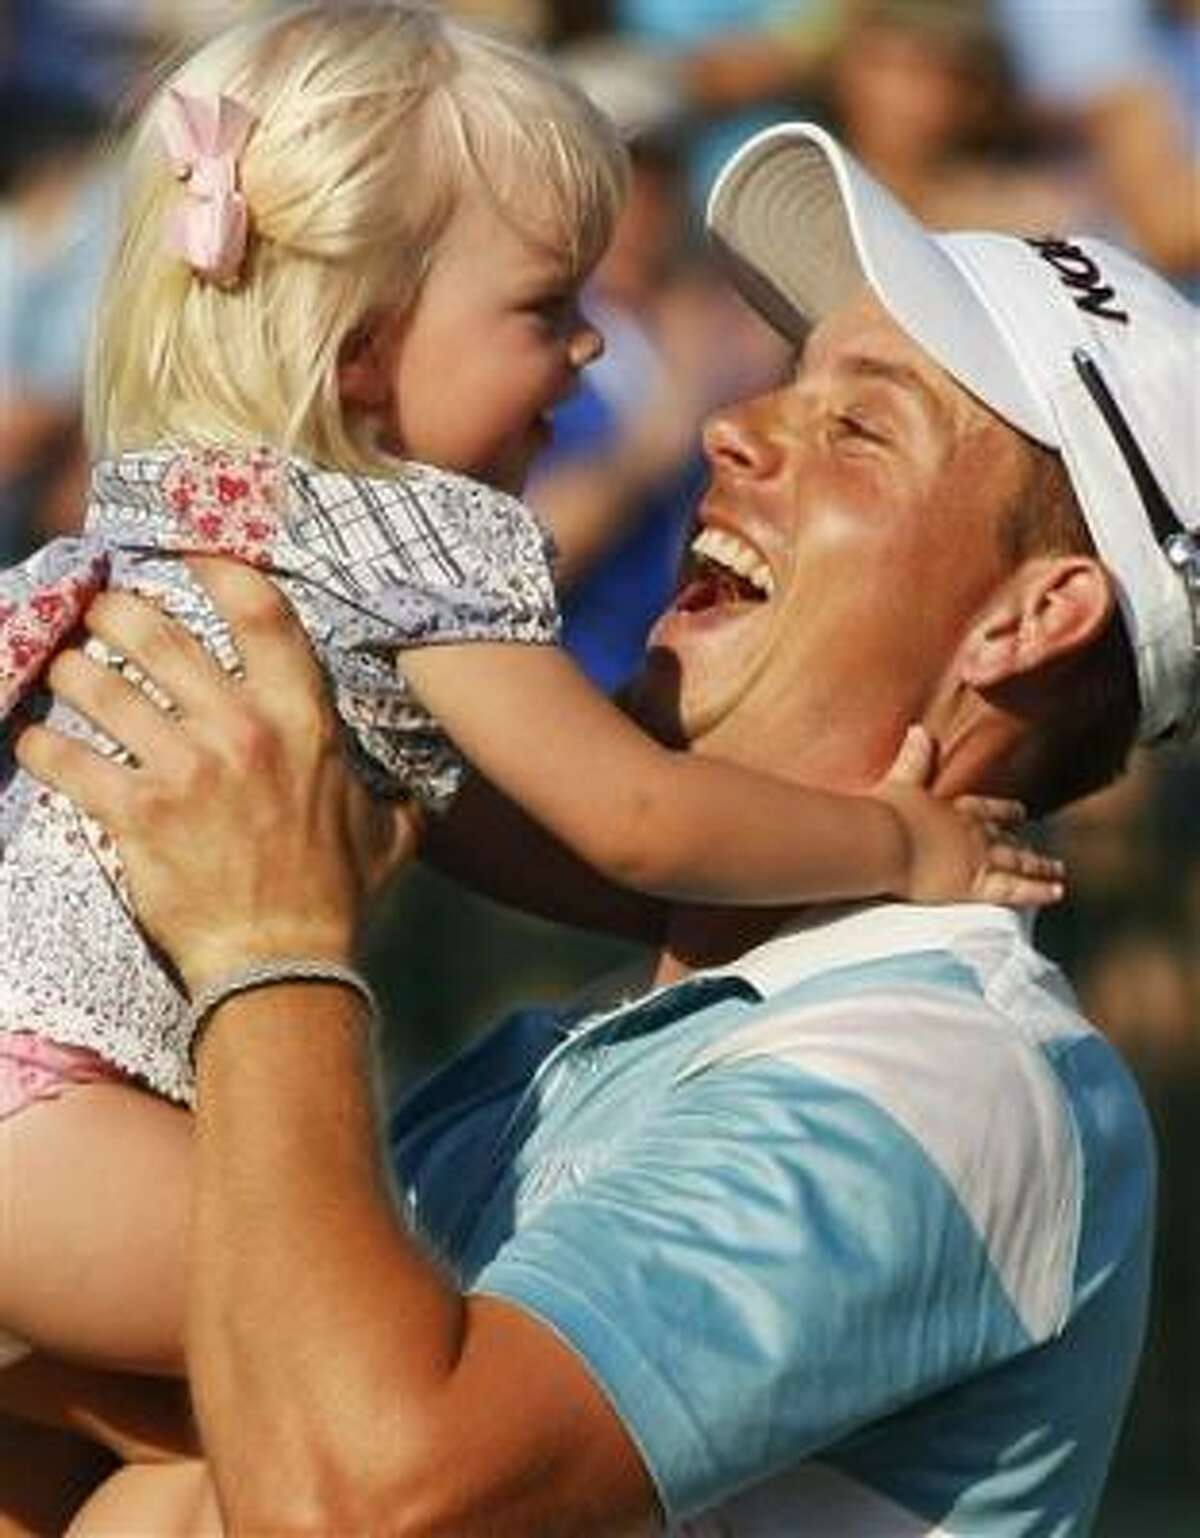 Henrik Stenson of Sweden celebrates his four-shot victory at The Players Championship with his daughter Lisa on Sunday at TPC Sawgrass in Ponte Vedra Beach, Fla.